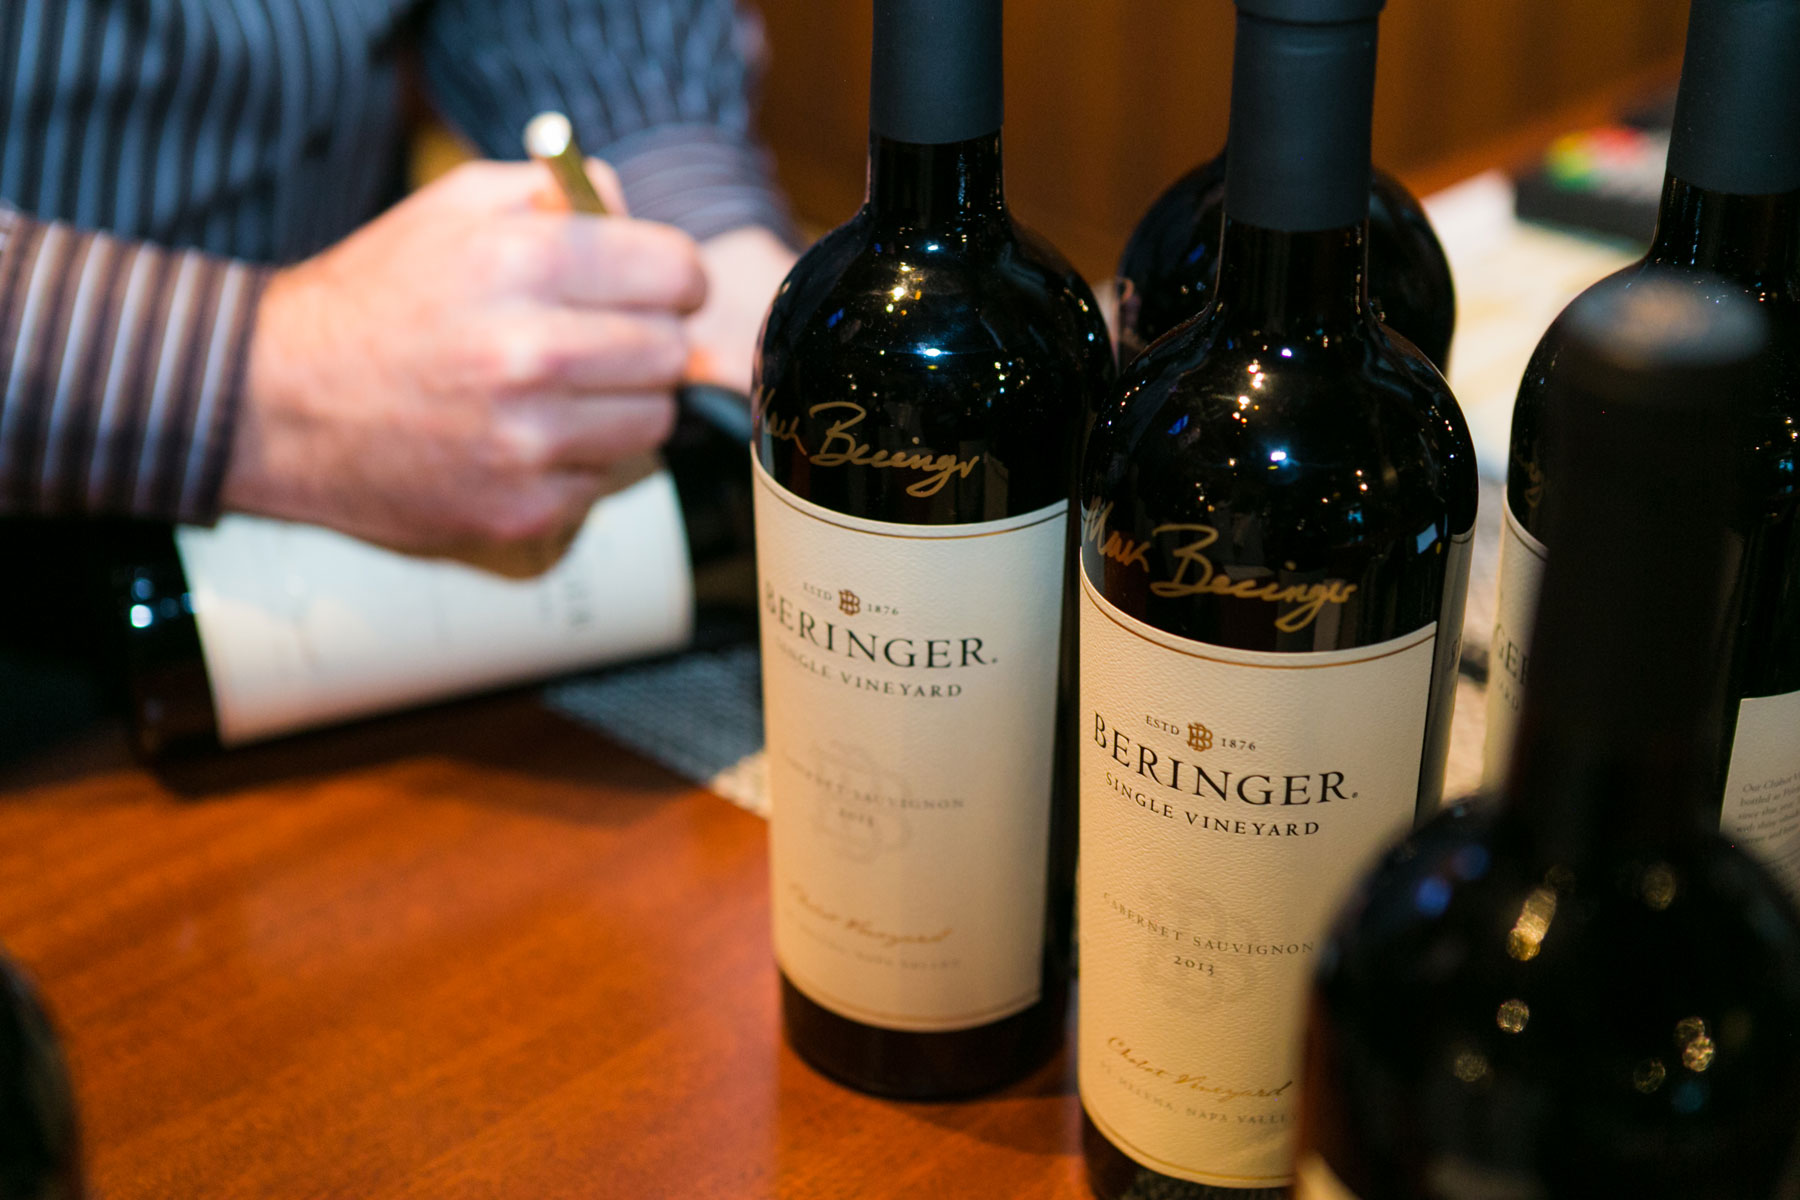 Beringer-Vineyards-Private-Reserve-19-Cabernet-Sauvignon-Release